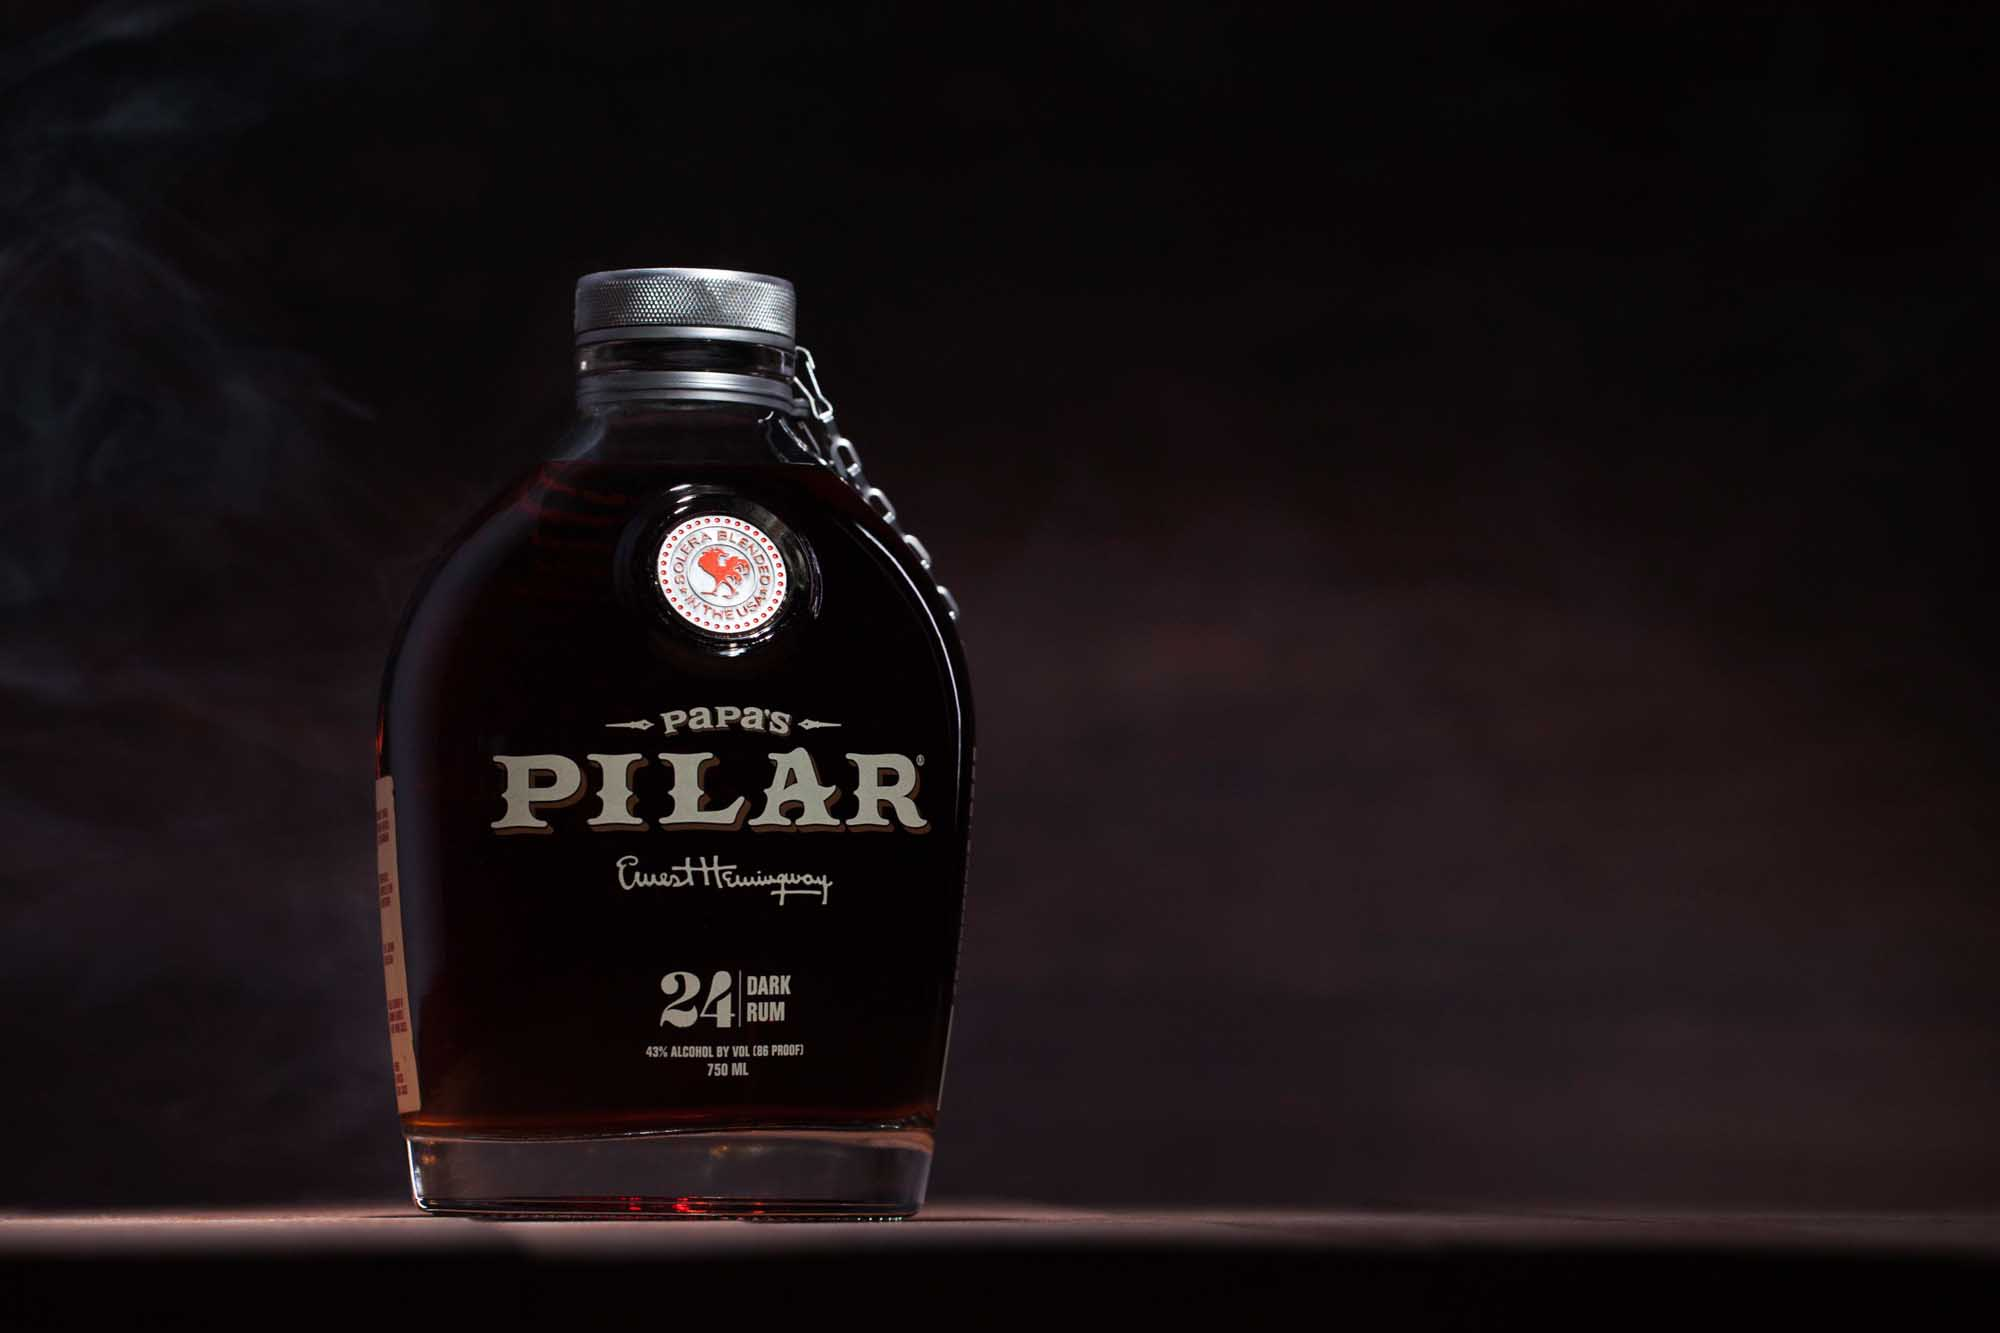 Papa's Pilar Rum bottle on table and dark background | product photography | Bottle Photography  | Still Life Photography shot in Boulder, Colorado for Crispin Porter + Bogusky